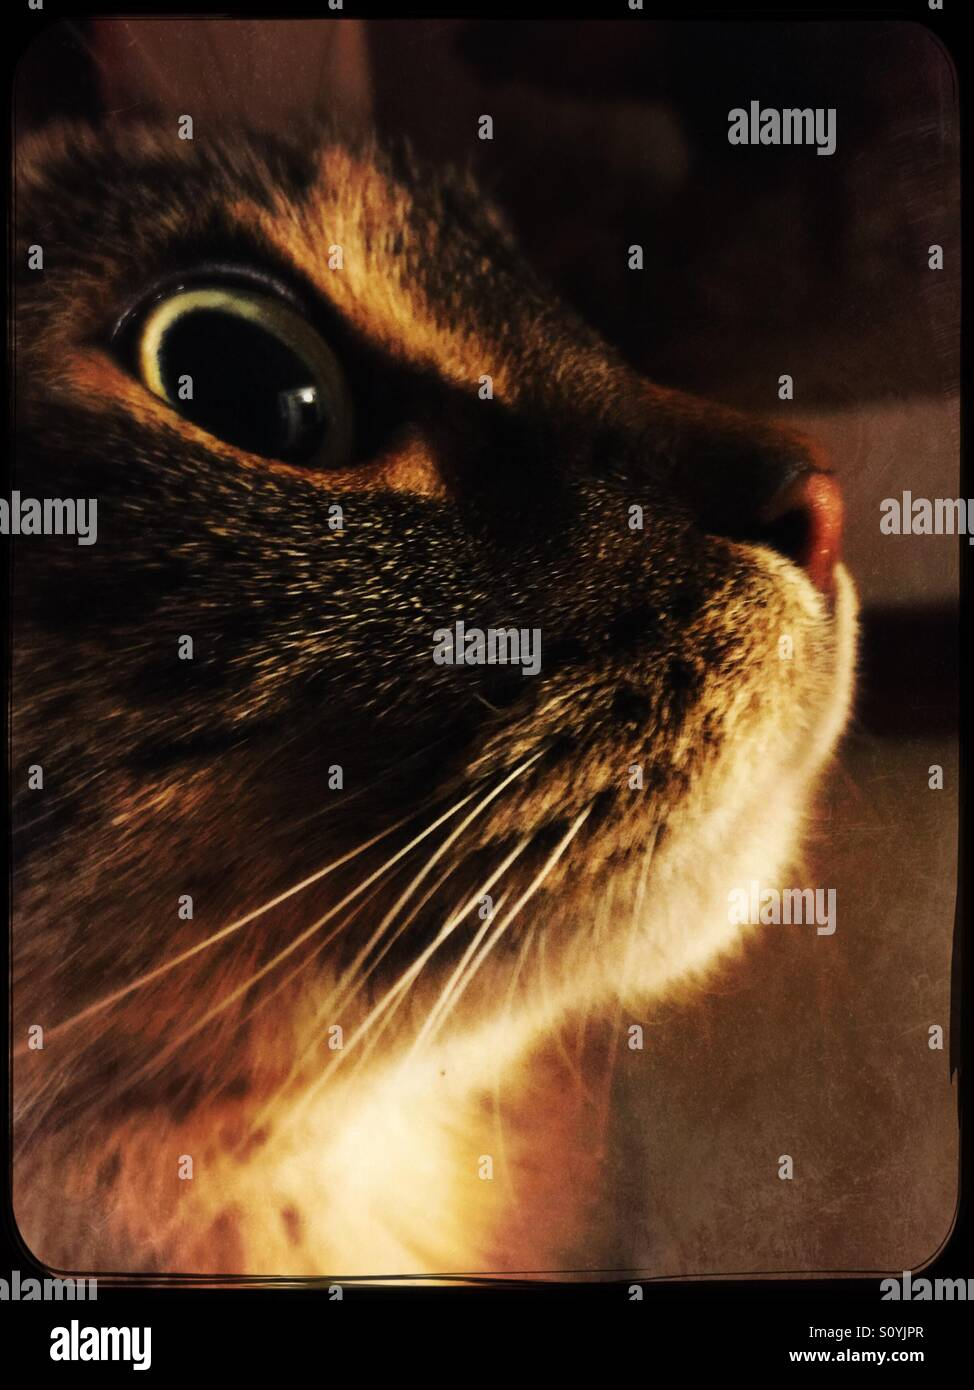 Entranced tabby cat in profile - Stock Image